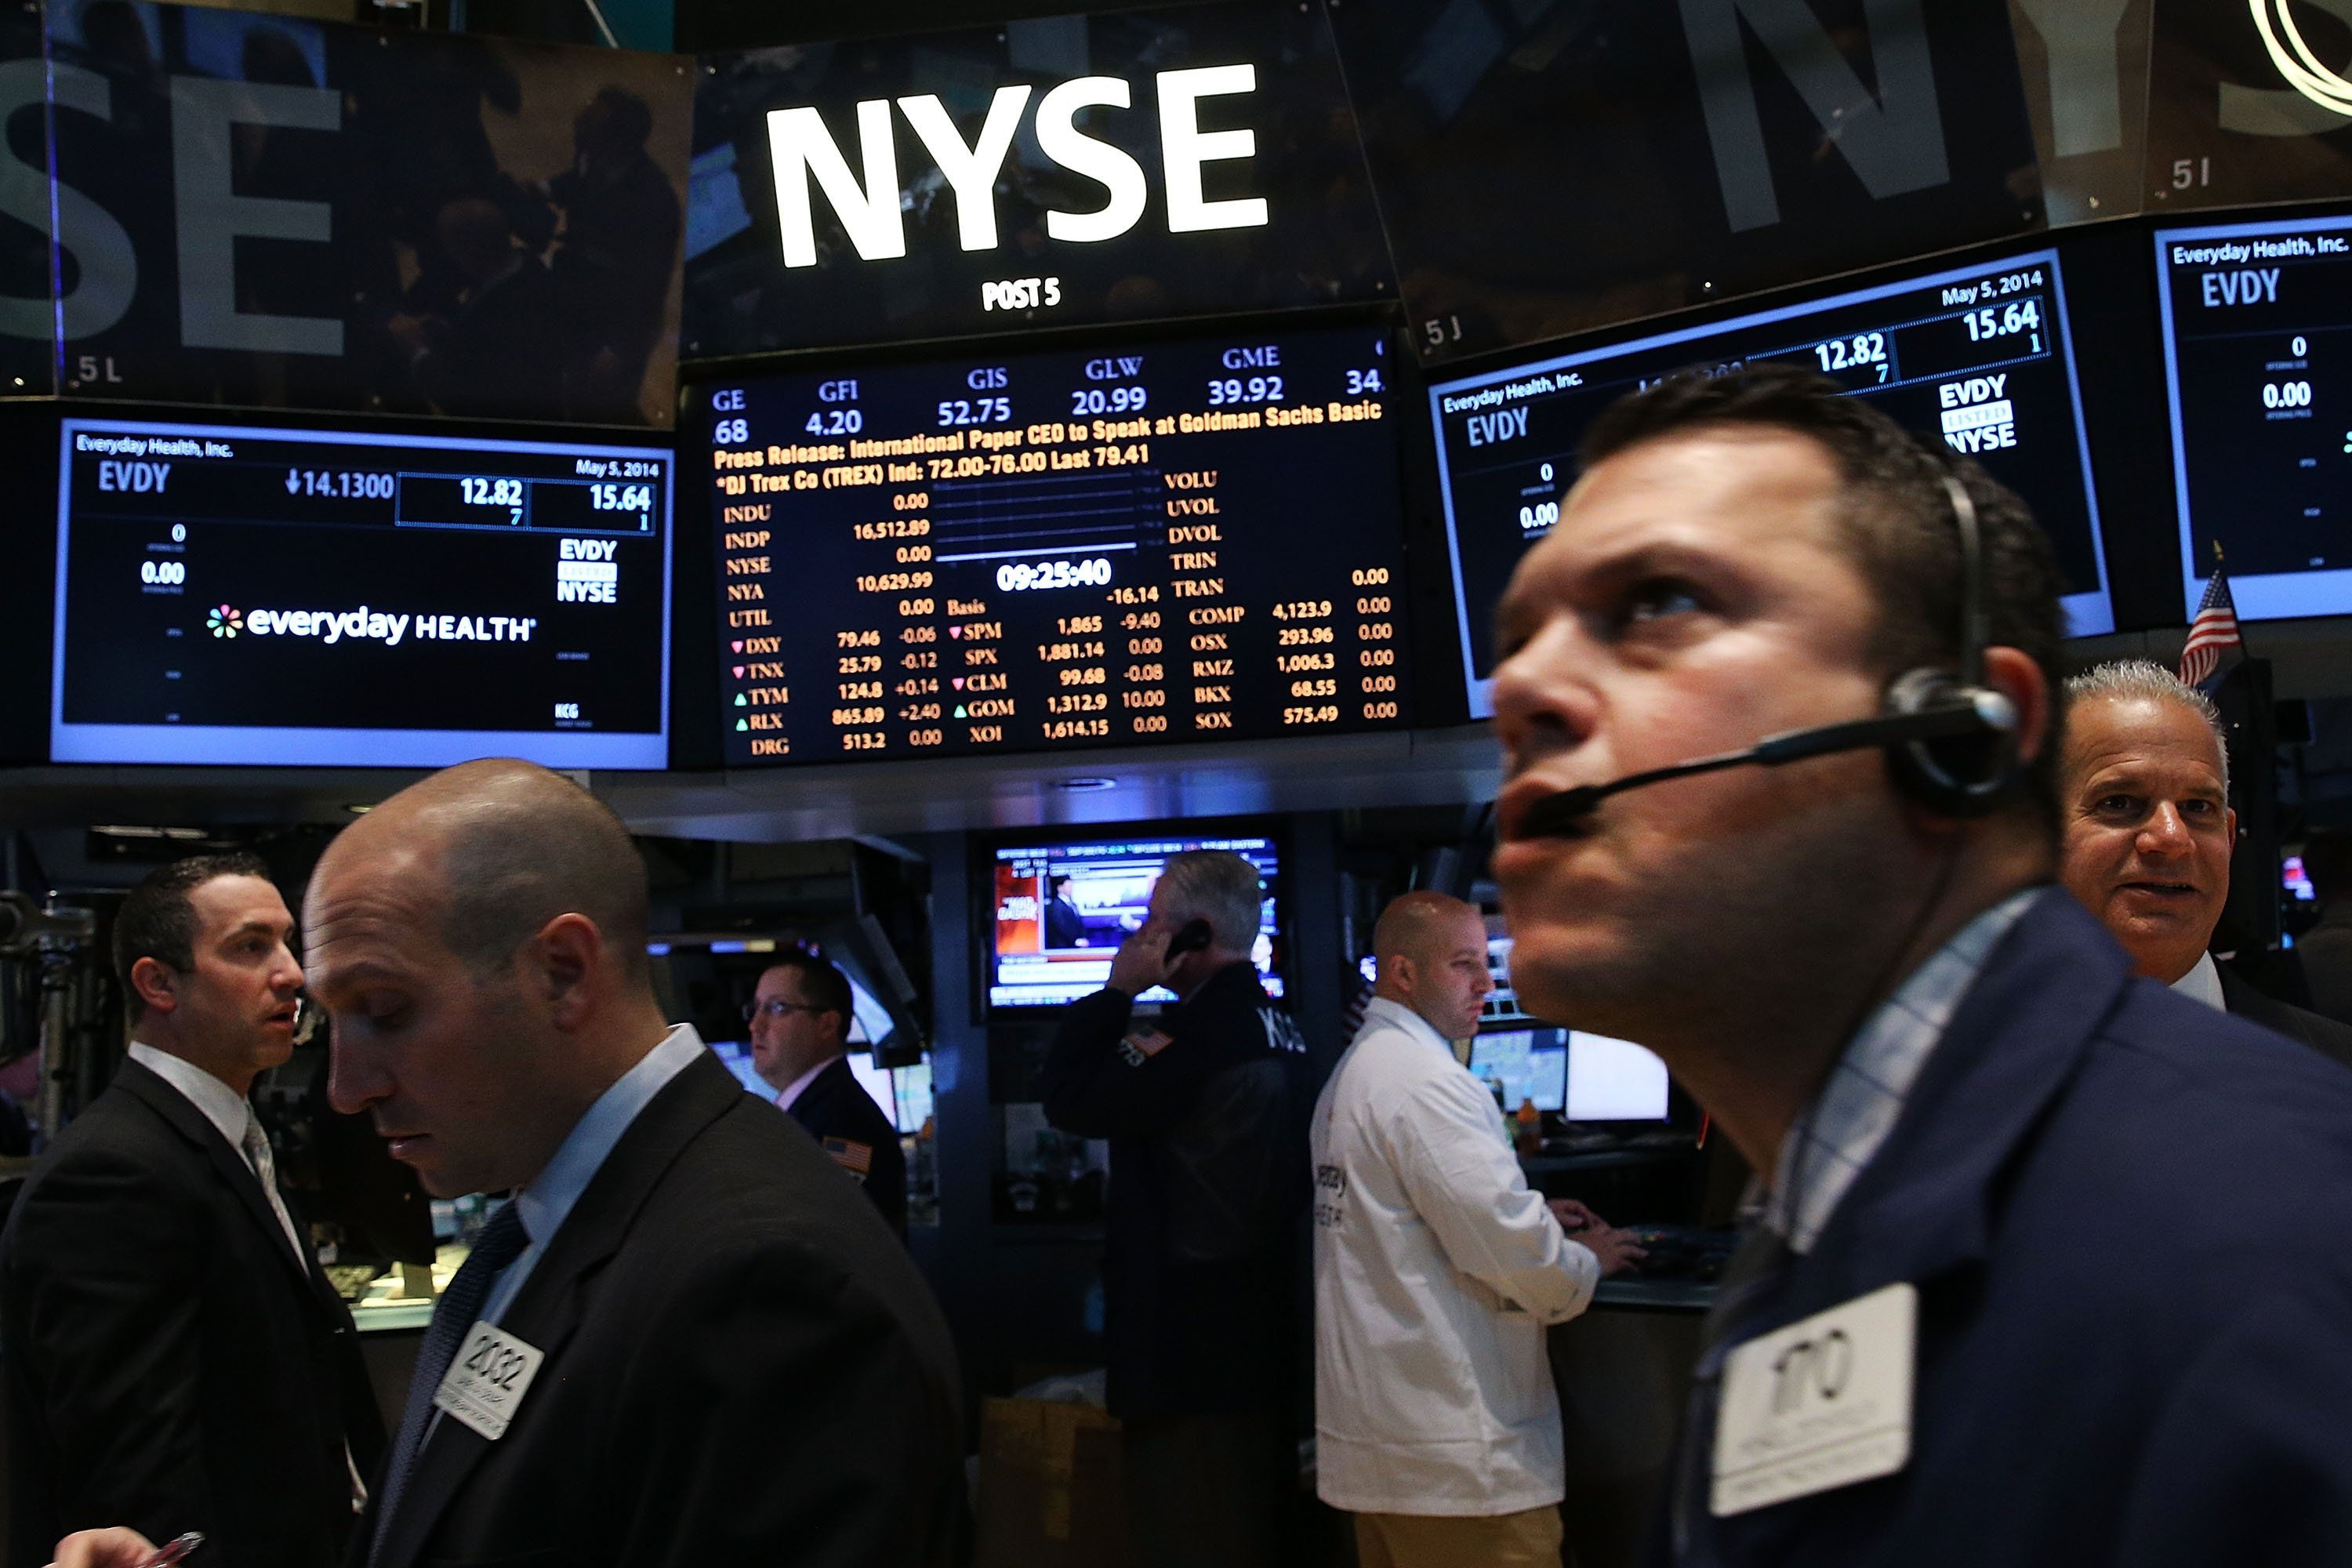 Traders work on the floor of the New York Stock Exchange on May 5, 2014 in New York City.